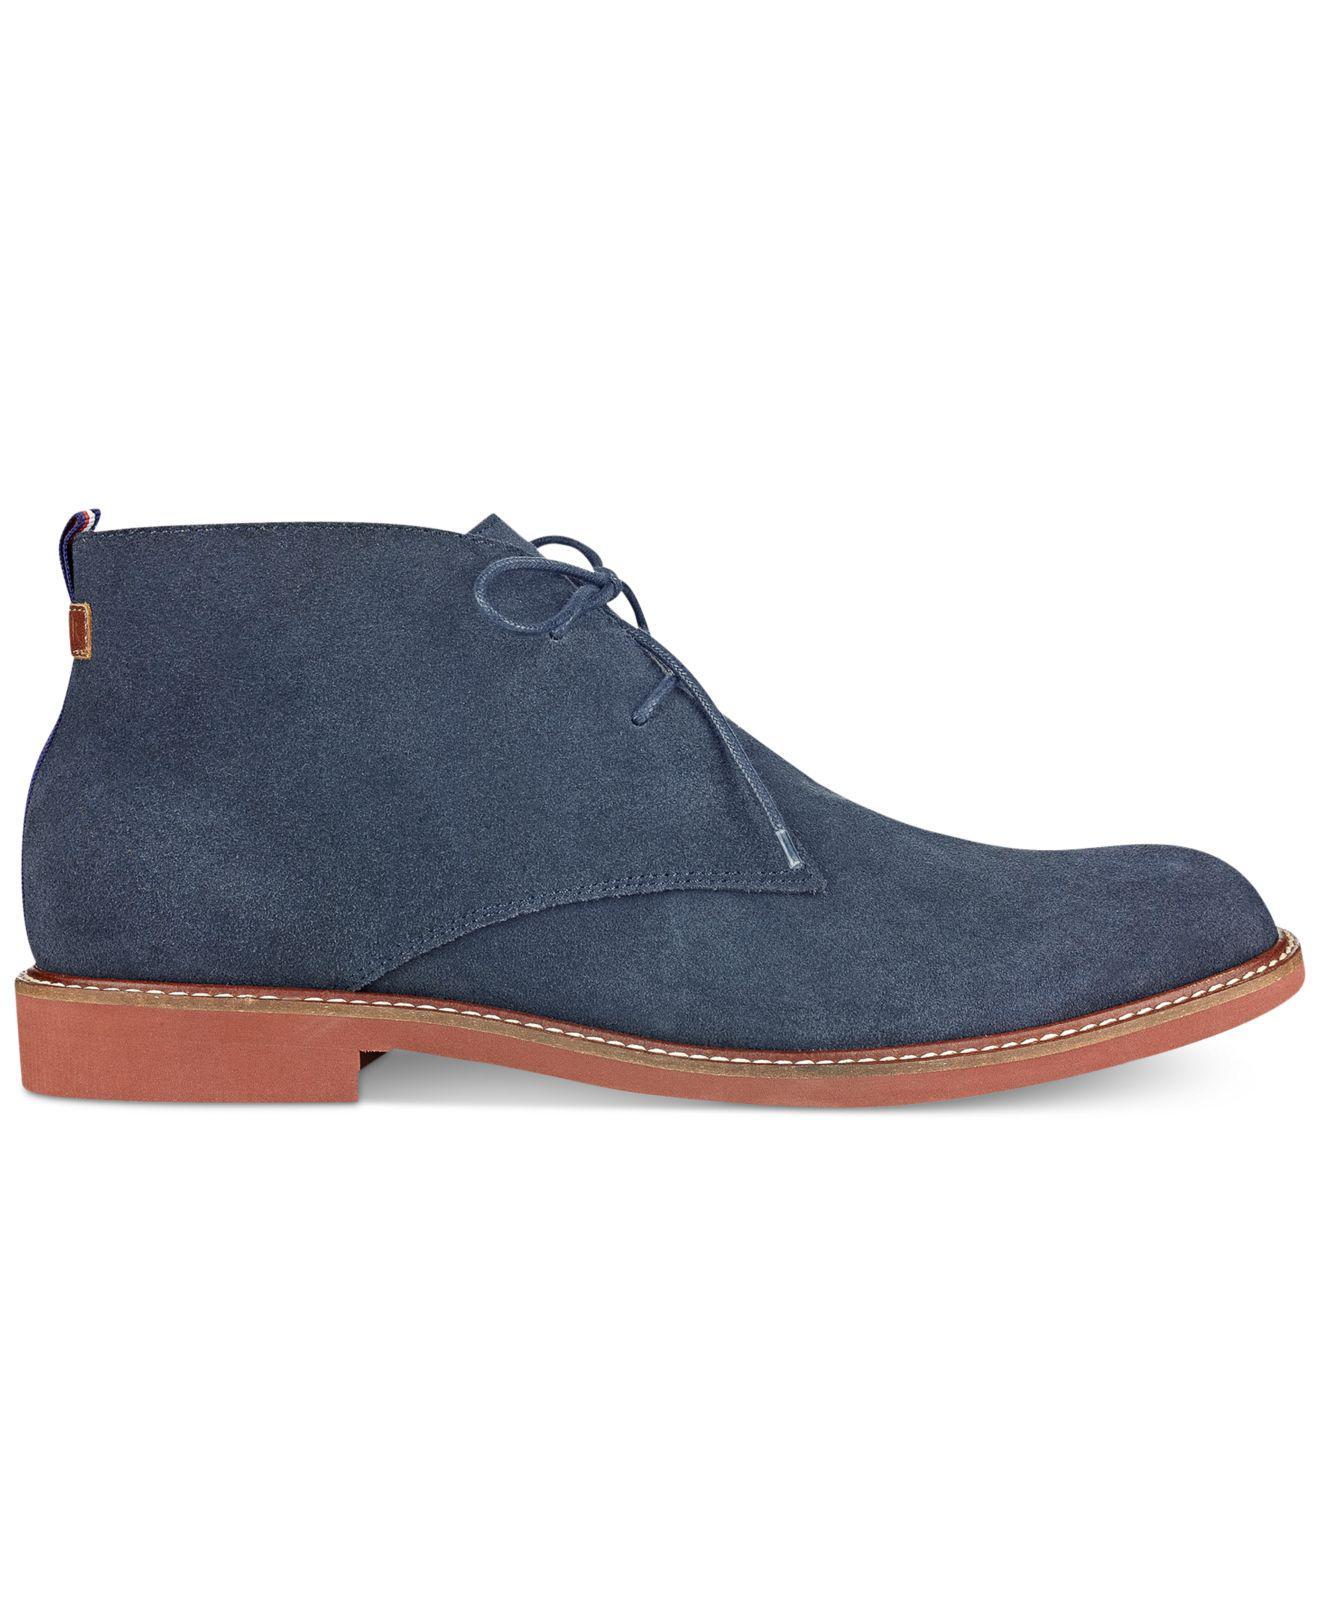 d49fa0951 Lyst - Tommy Hilfiger Men s Gervis Chukka Boots in Blue for Men